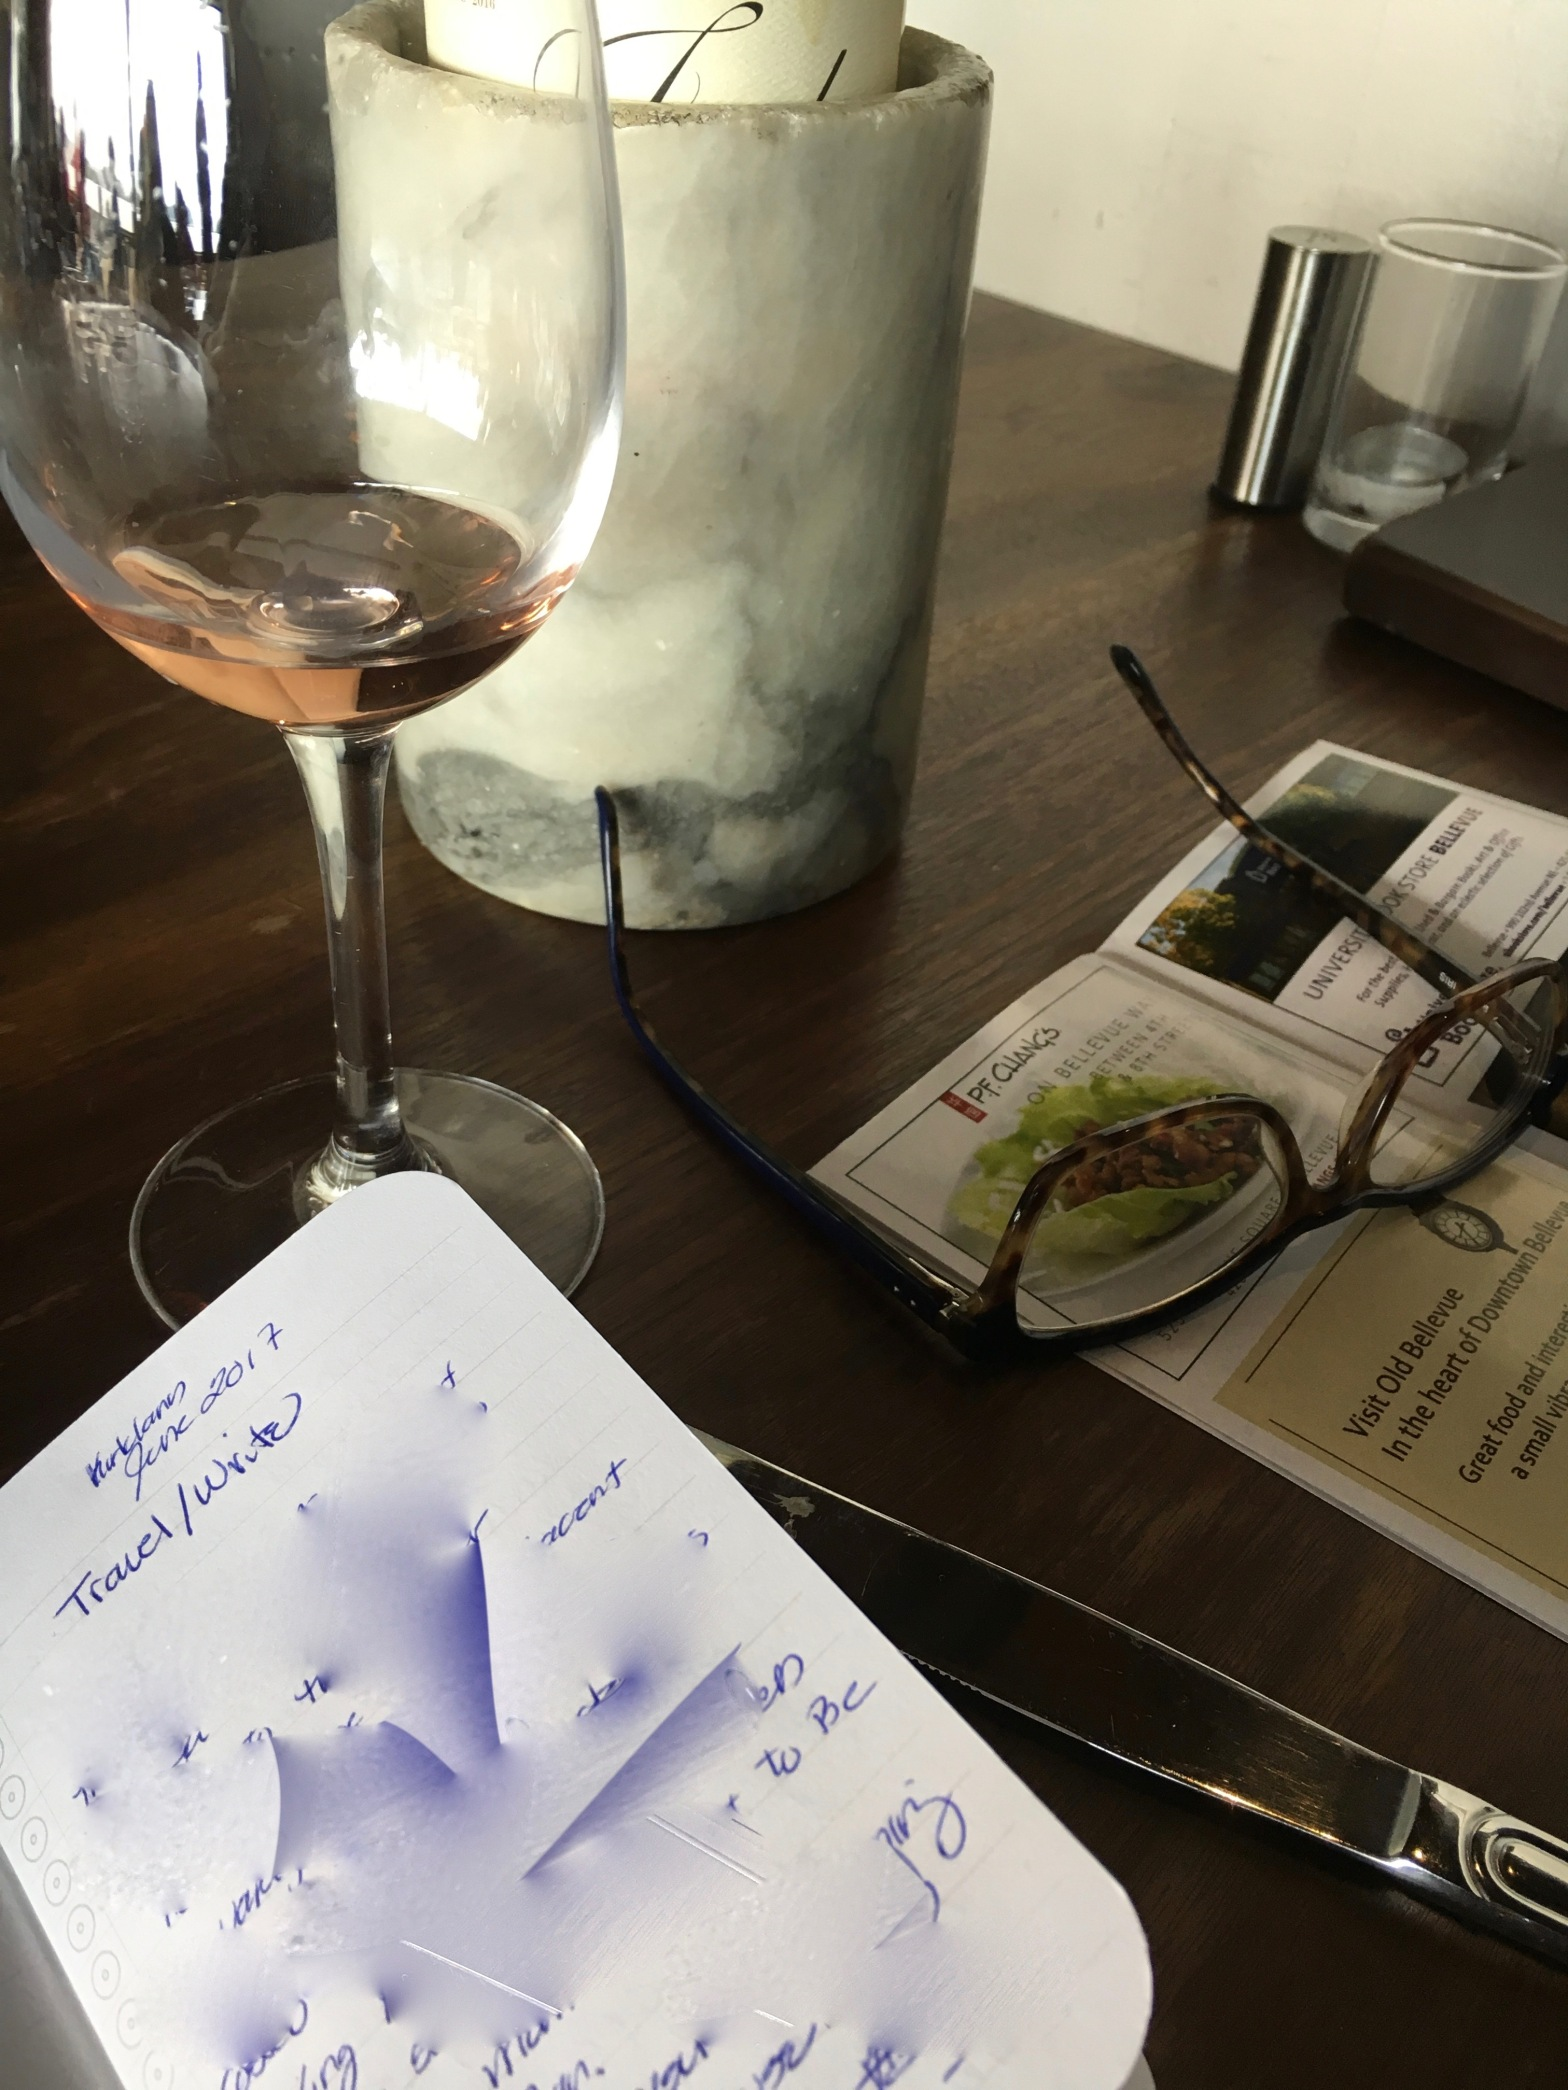 Notebooks and wine